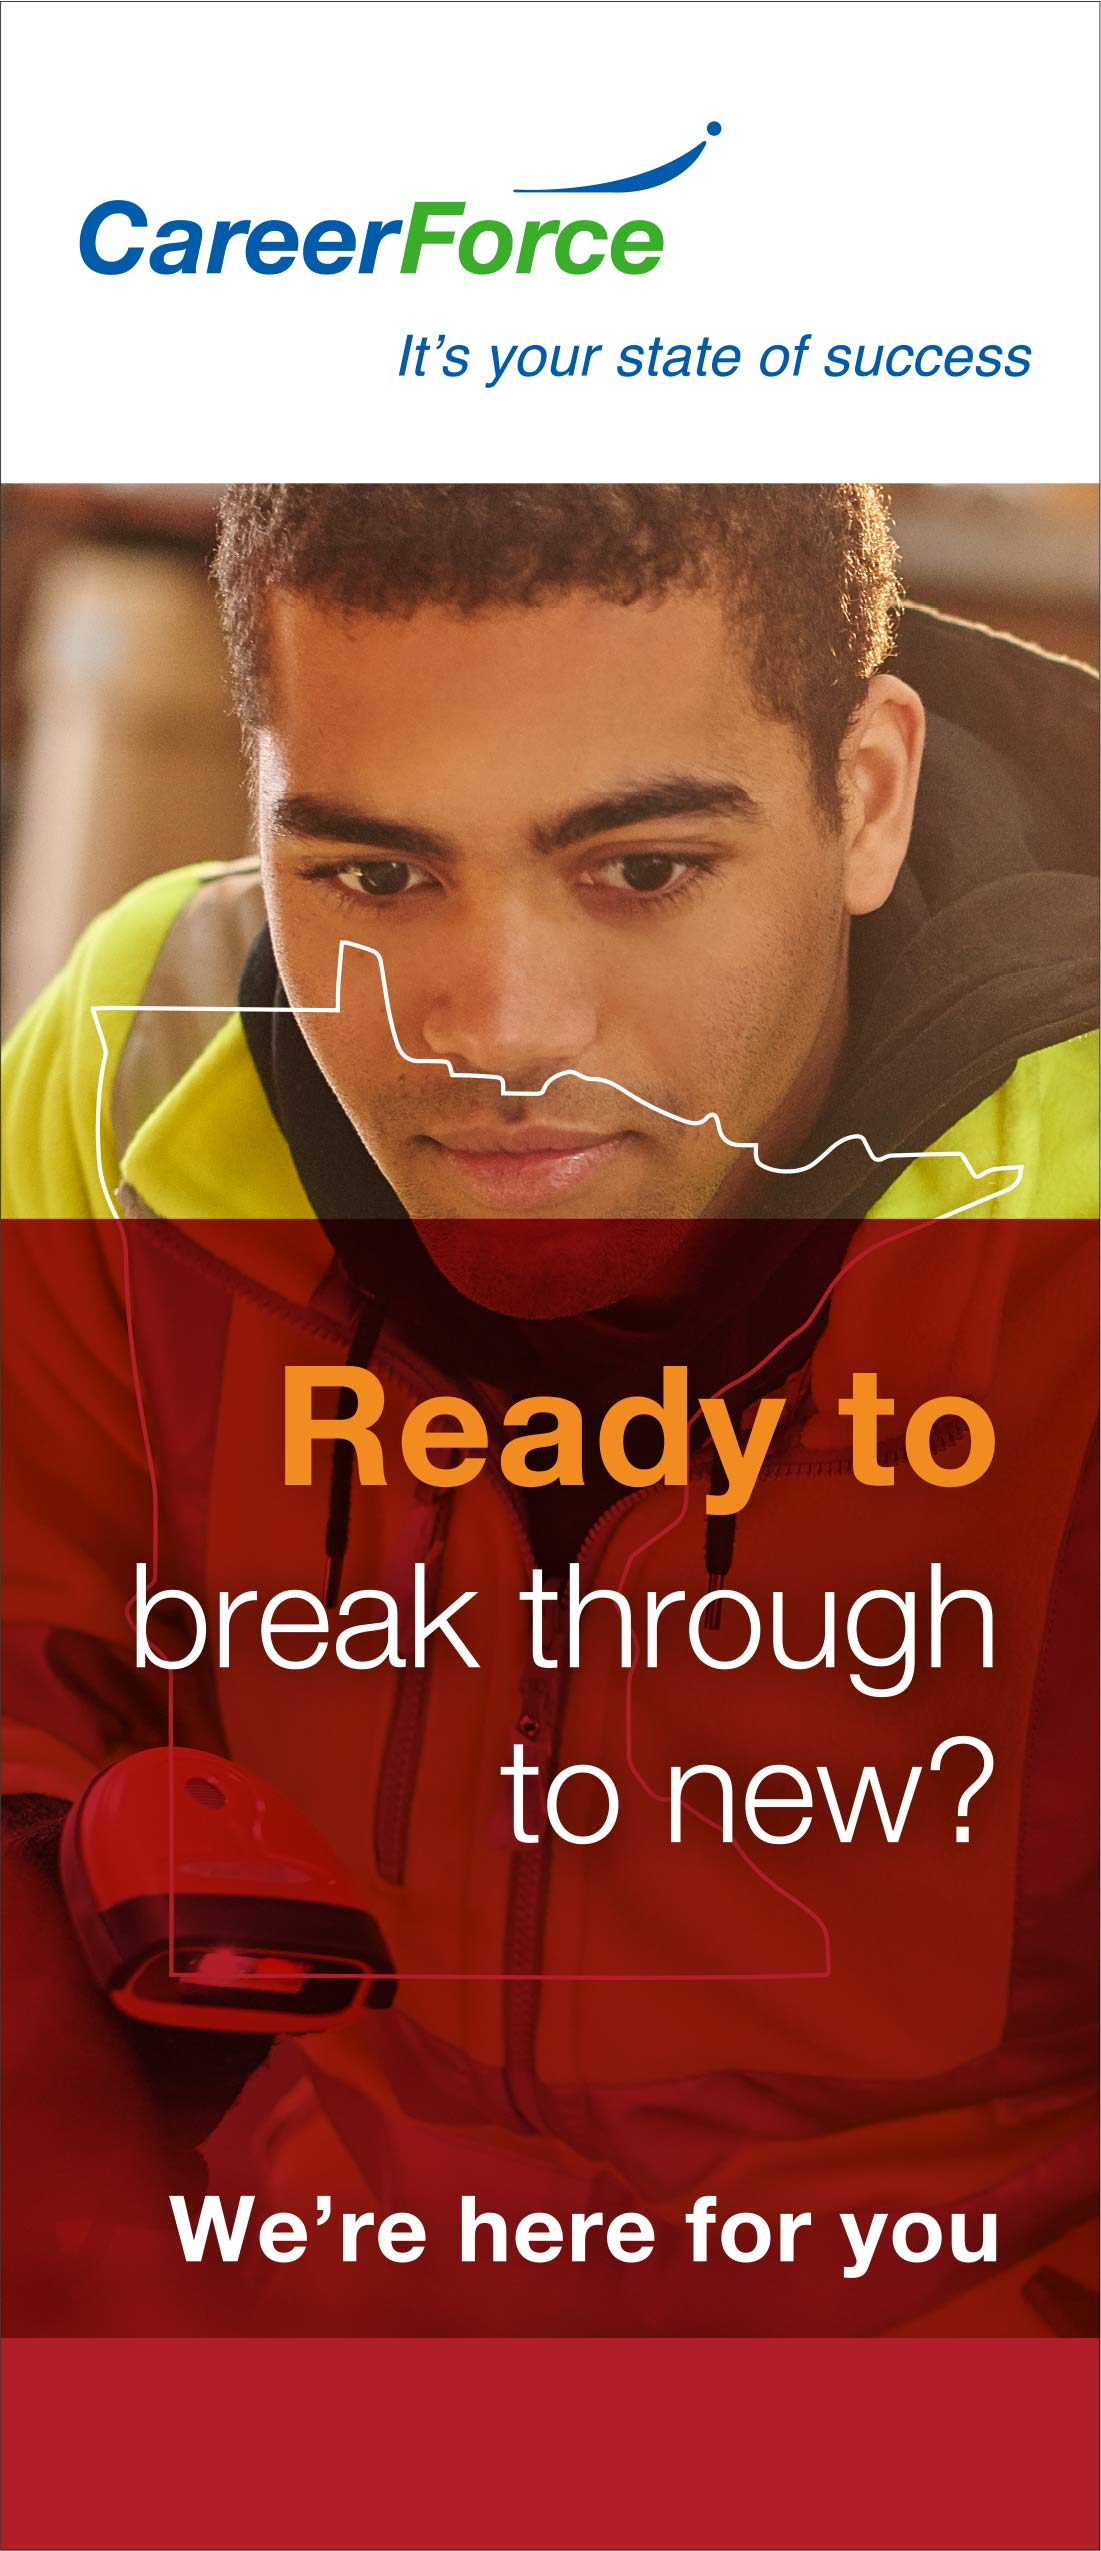 Brochure with headline: Ready to break through to new?